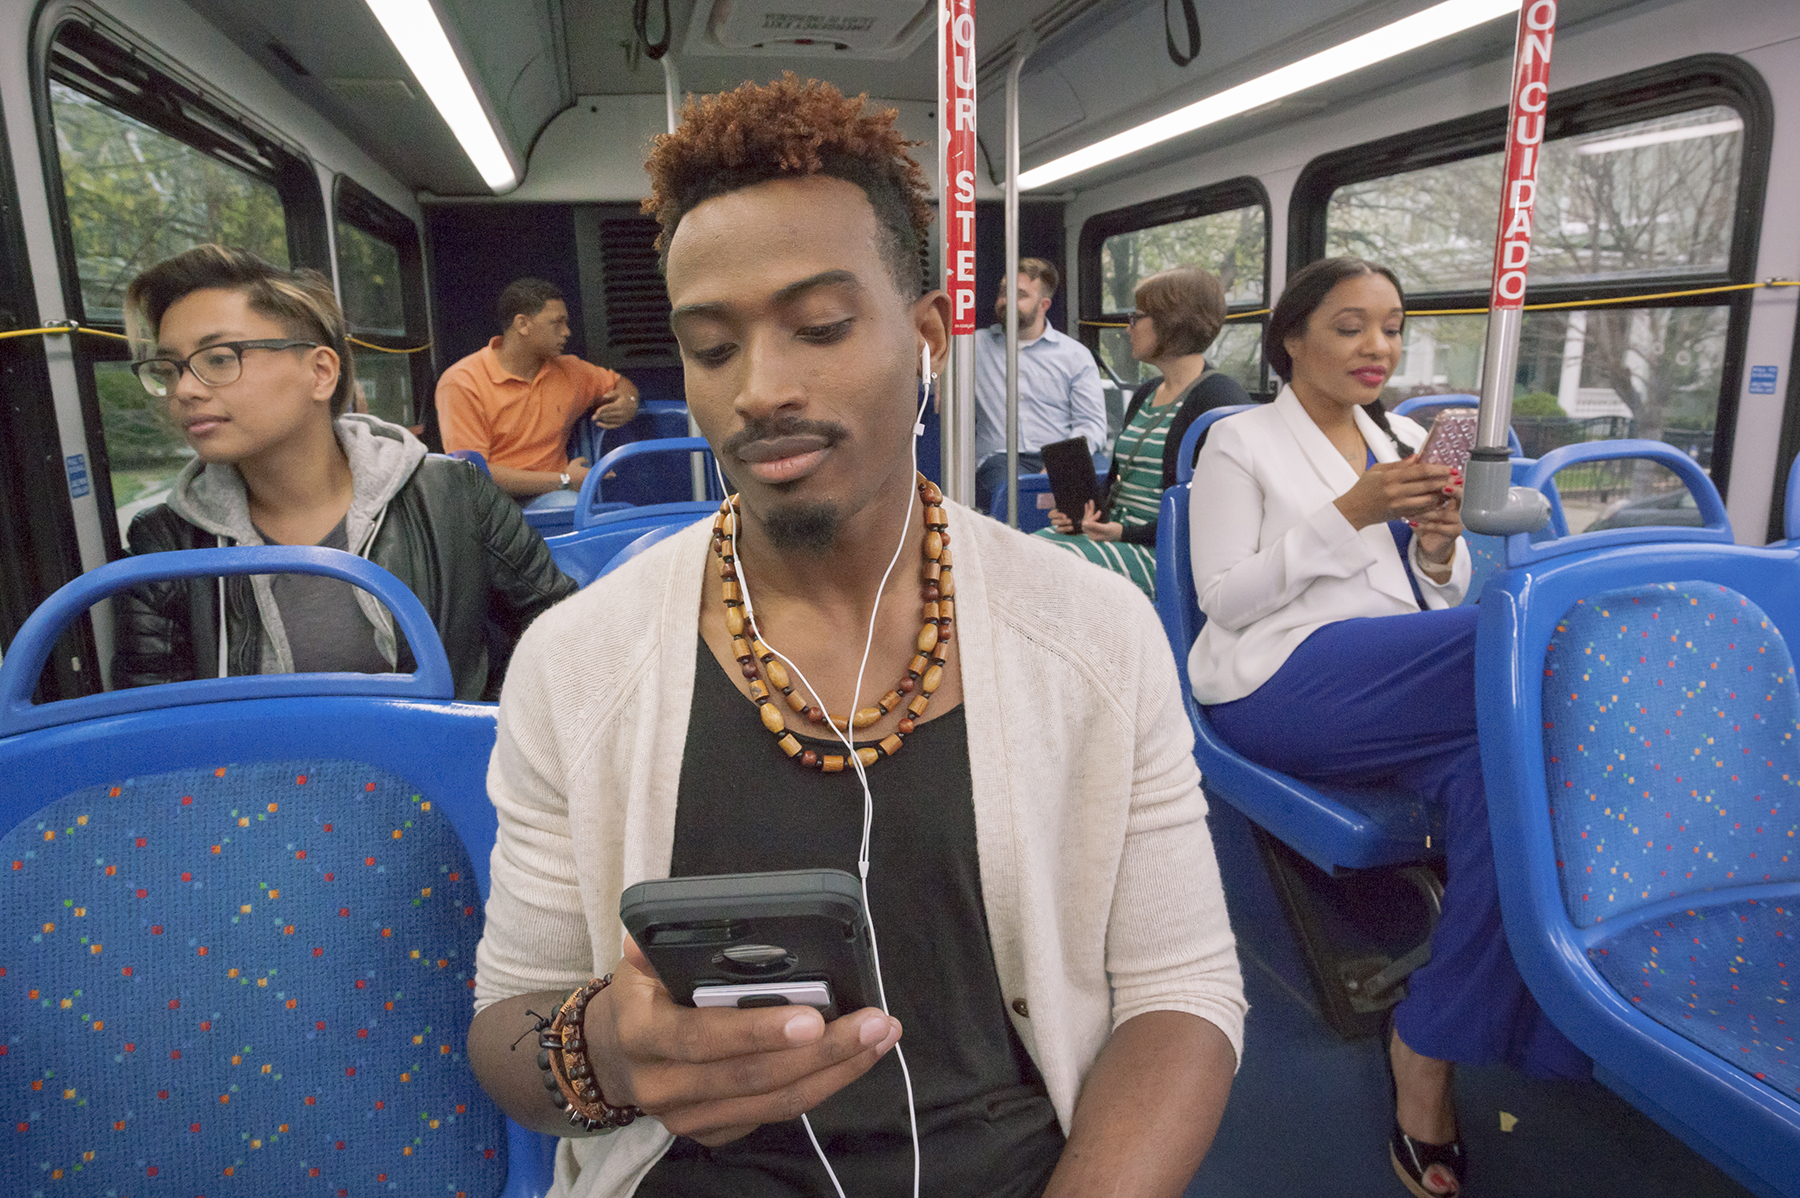 Bus riders shown seated inside bus, with primary focus on person shown using headphones while listening to something on their cell phone